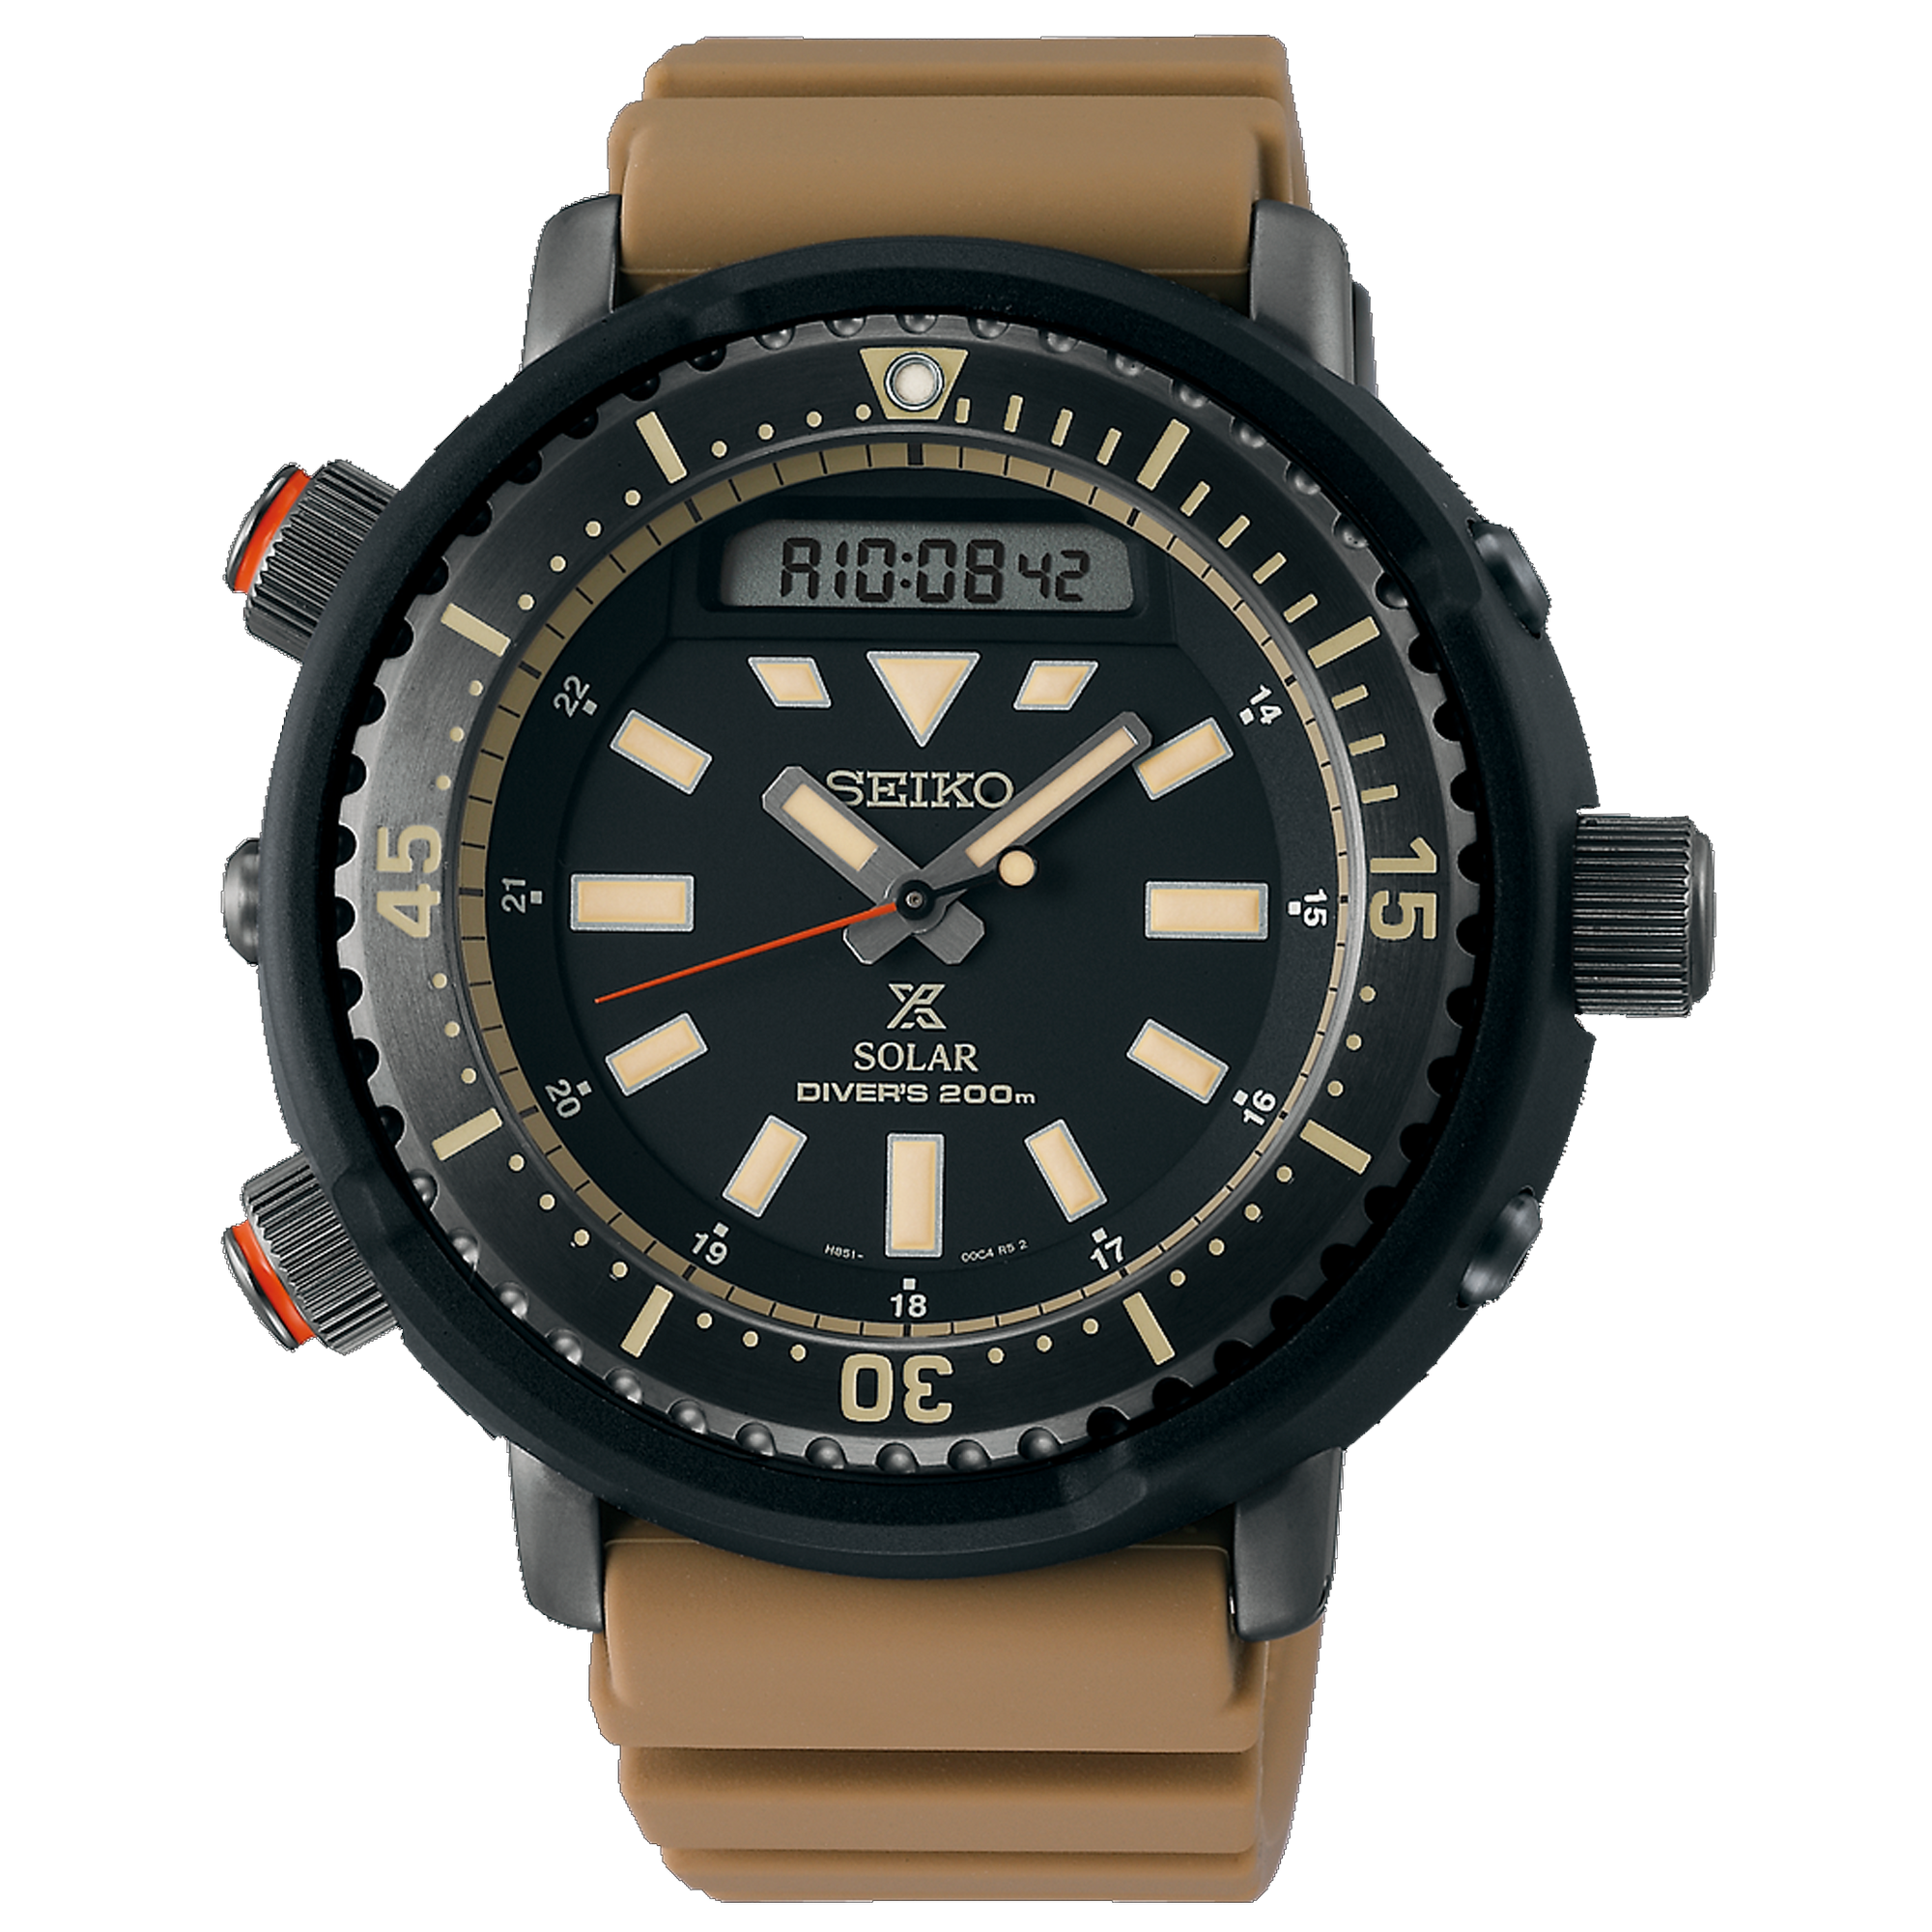 Seiko Prospex Solar Tuna Dive Watch Analog/Digital SNJ029